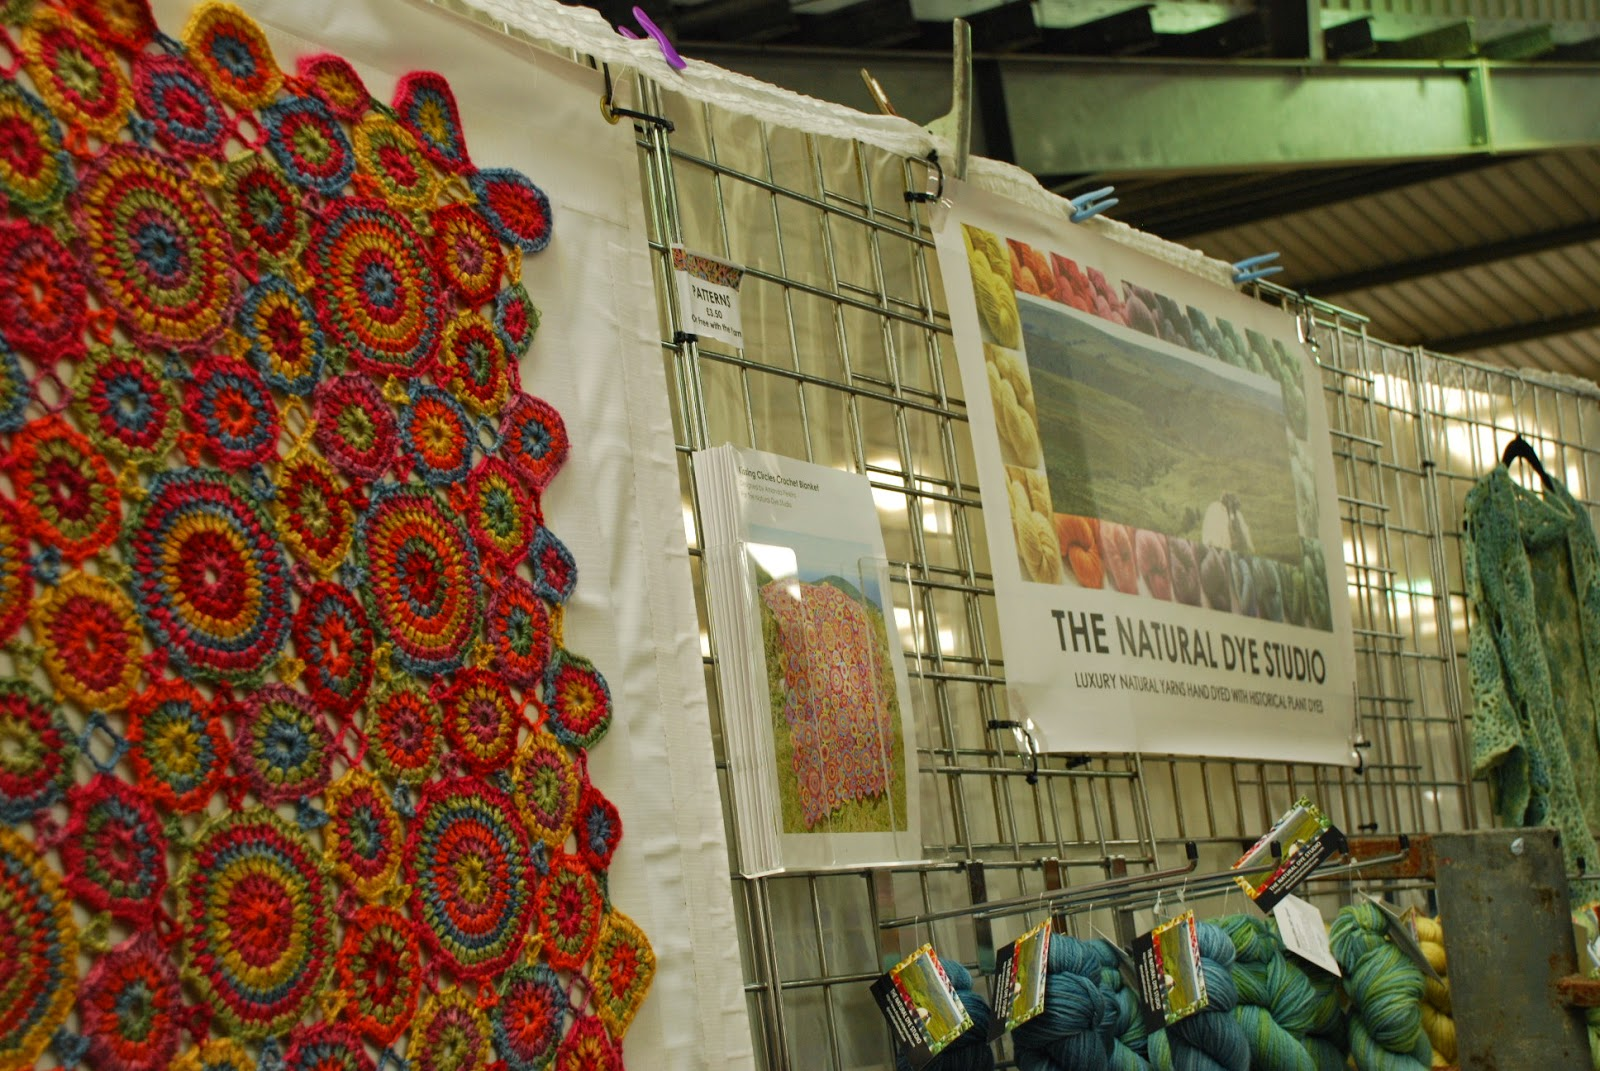 image of the natural dye studio stall